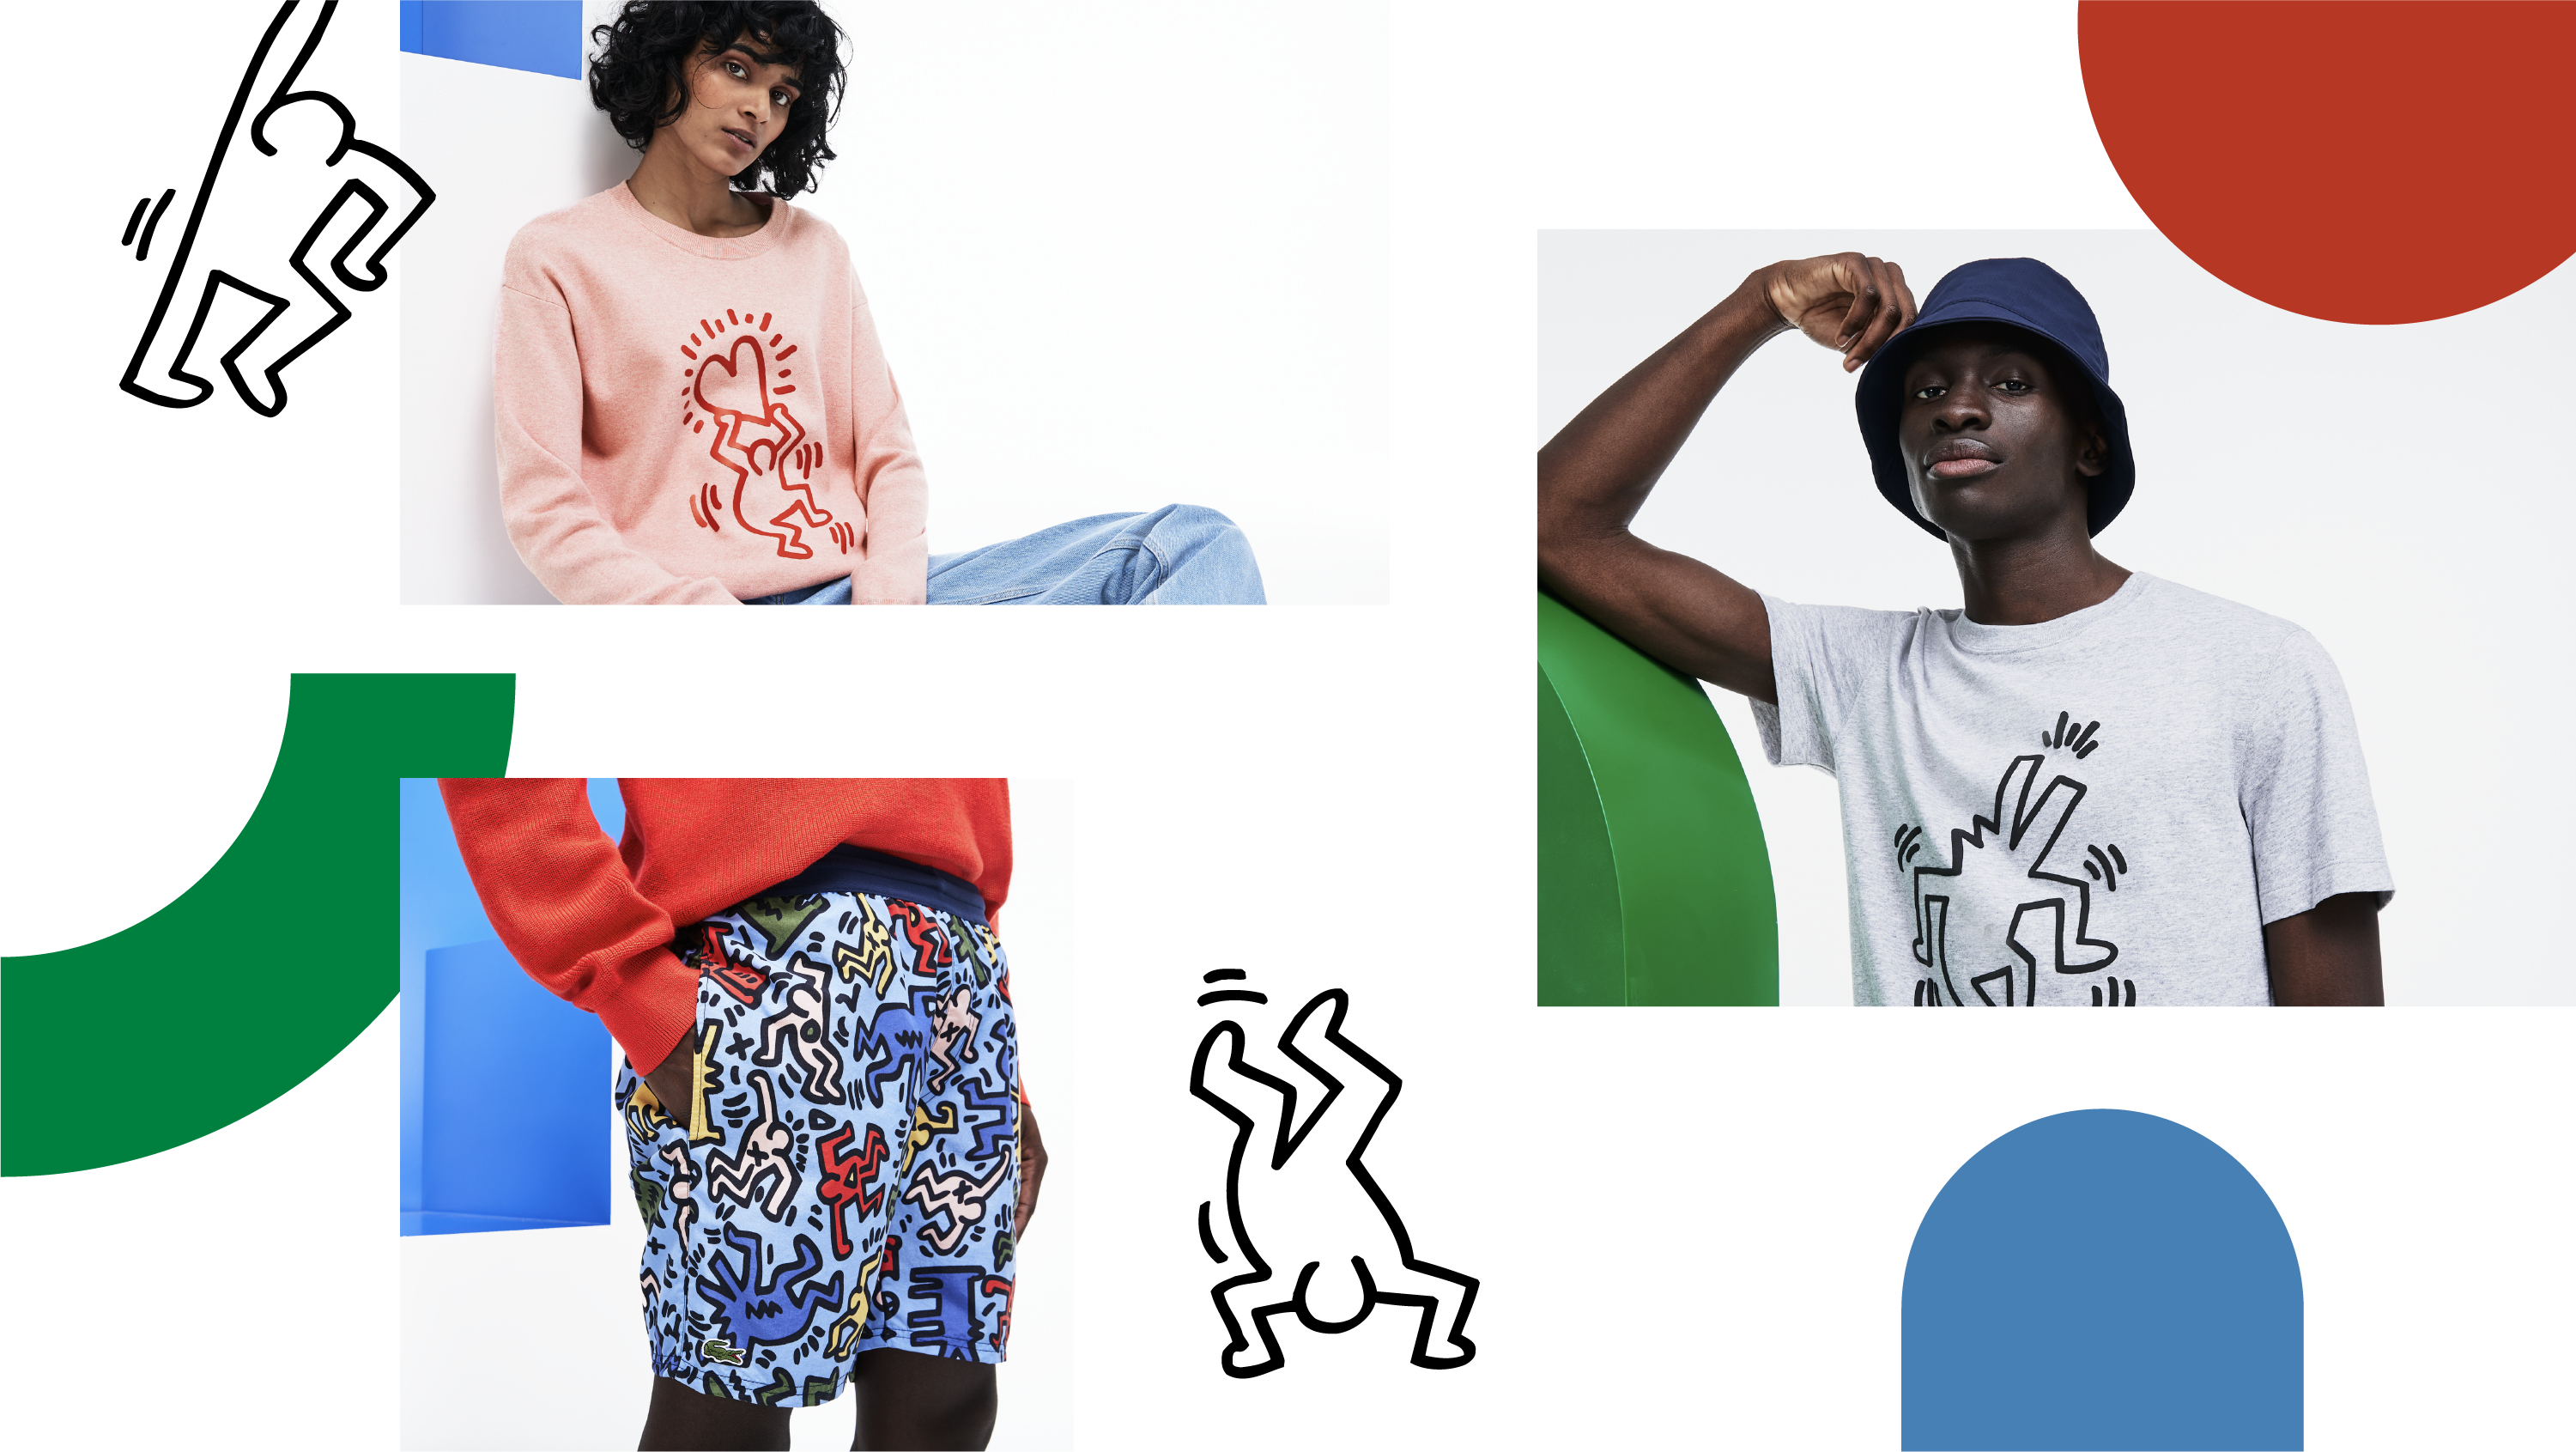 nouvelle collection keith haring lacoste activation